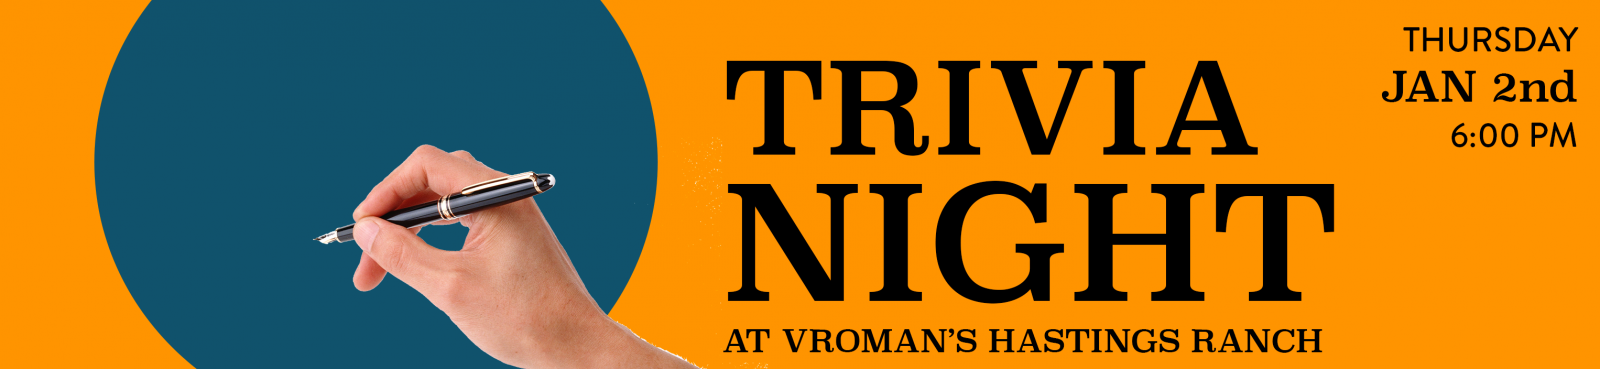 Trivia Night at Vroman's Hastings Ranch